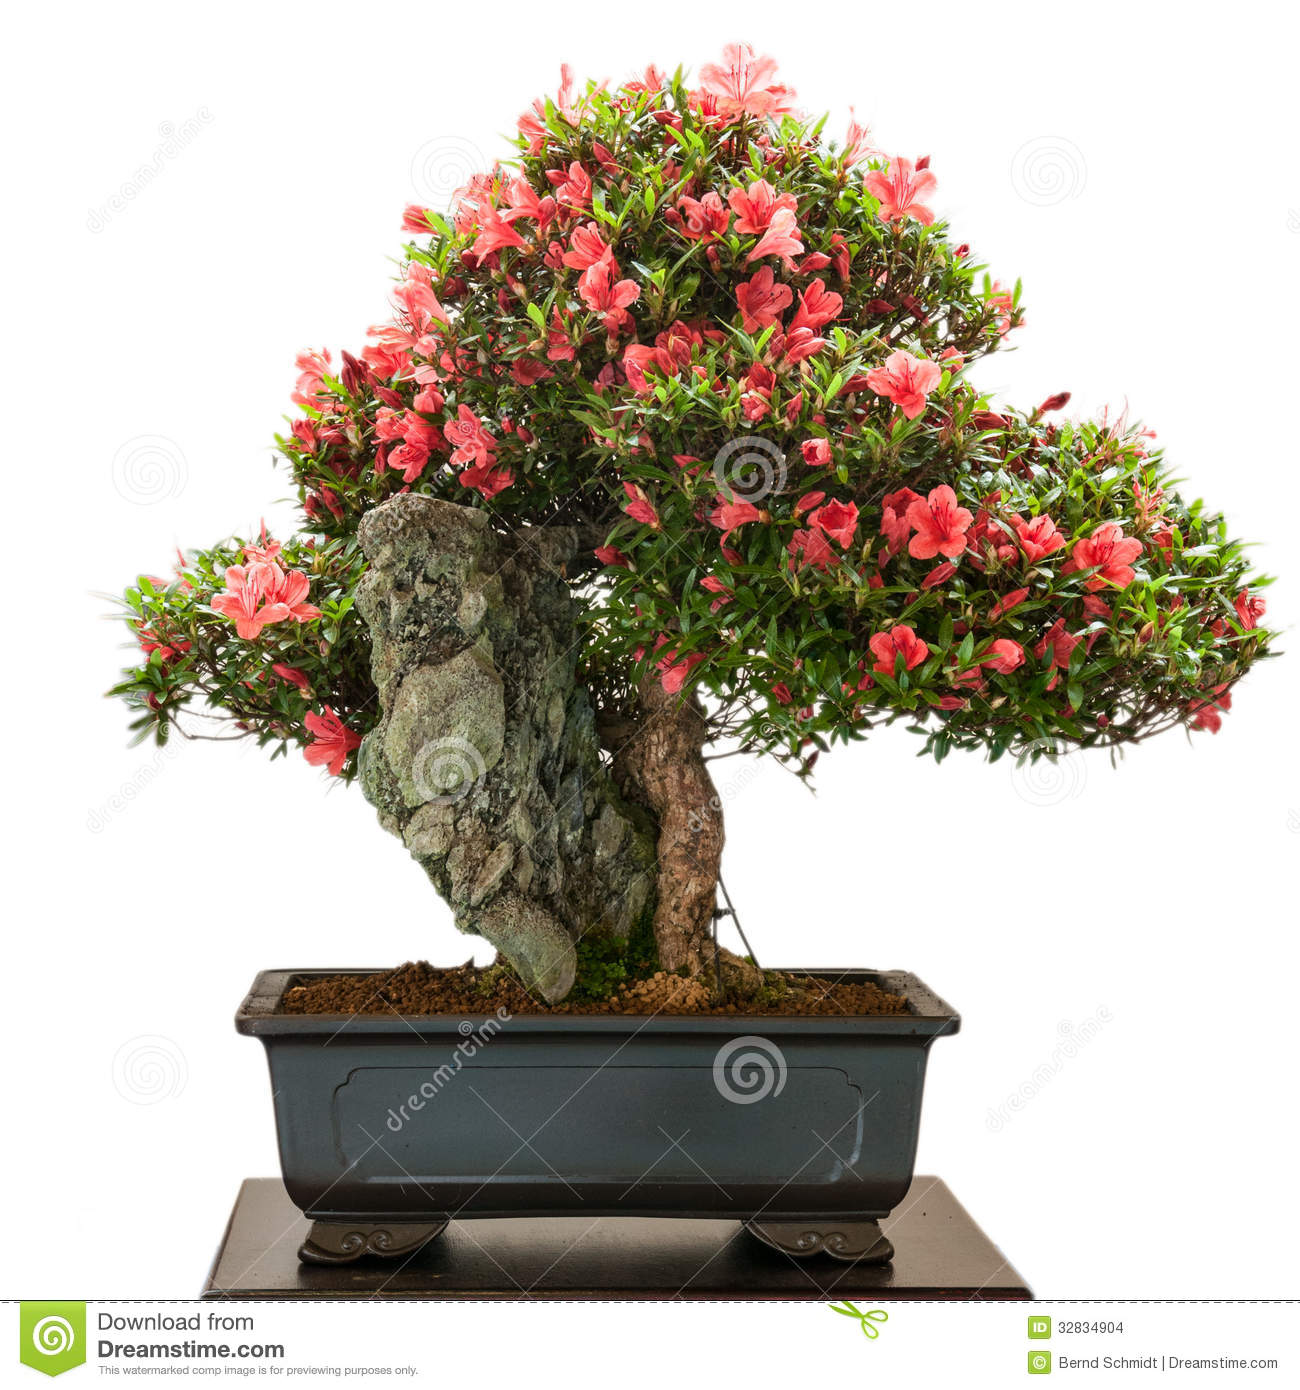 Rhododendron Indicum Bonsai Tree With Red Flowers Stock Photo